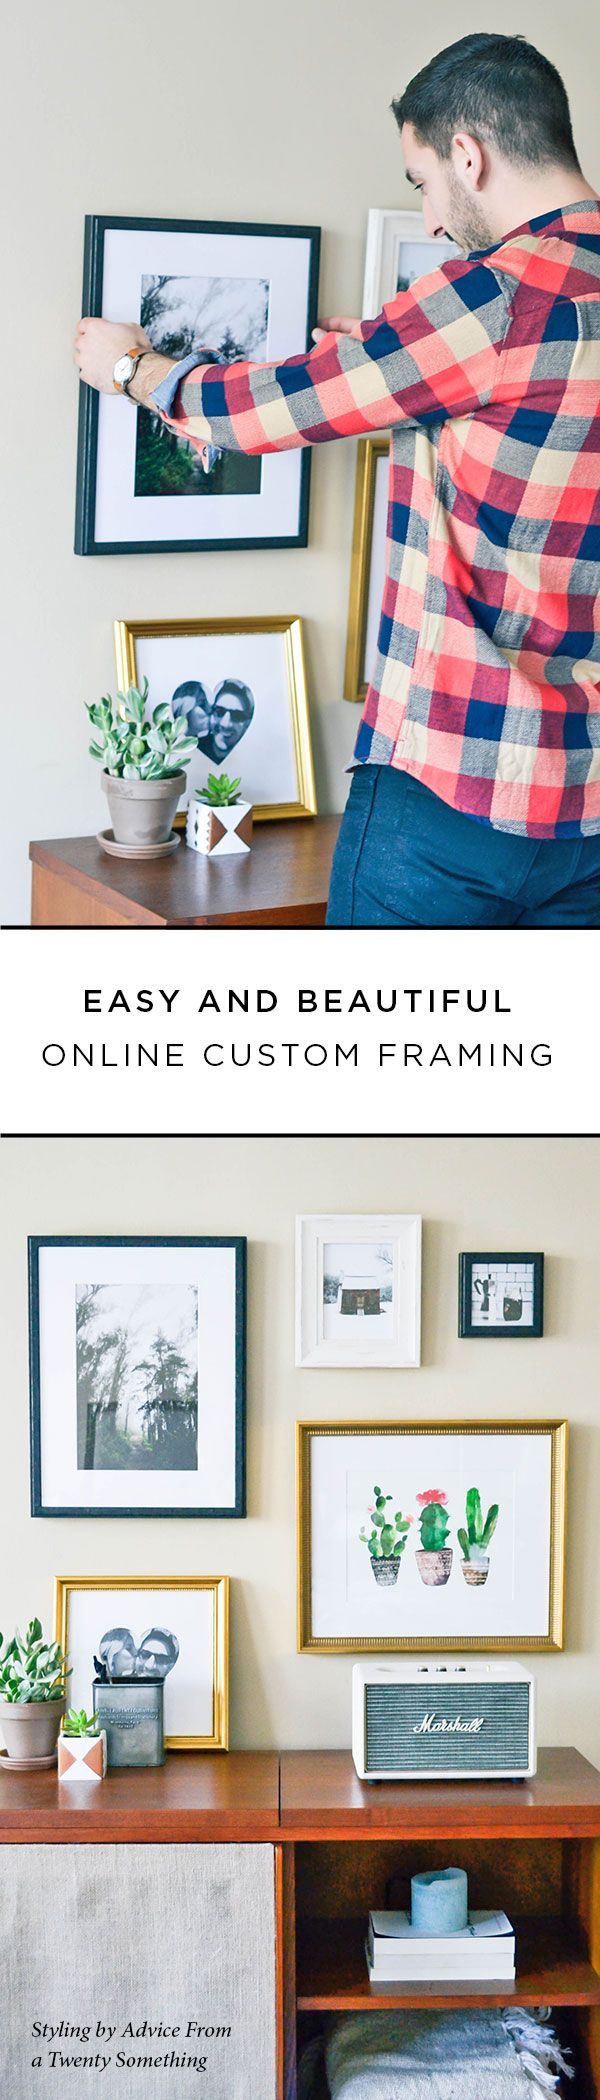 Spruce up your space by custom framing your favorite art prints and photos. @Framebridge makes it simple and affordable, and all shipping is free! Get custom frames delivered direct to your door, ready to hang!